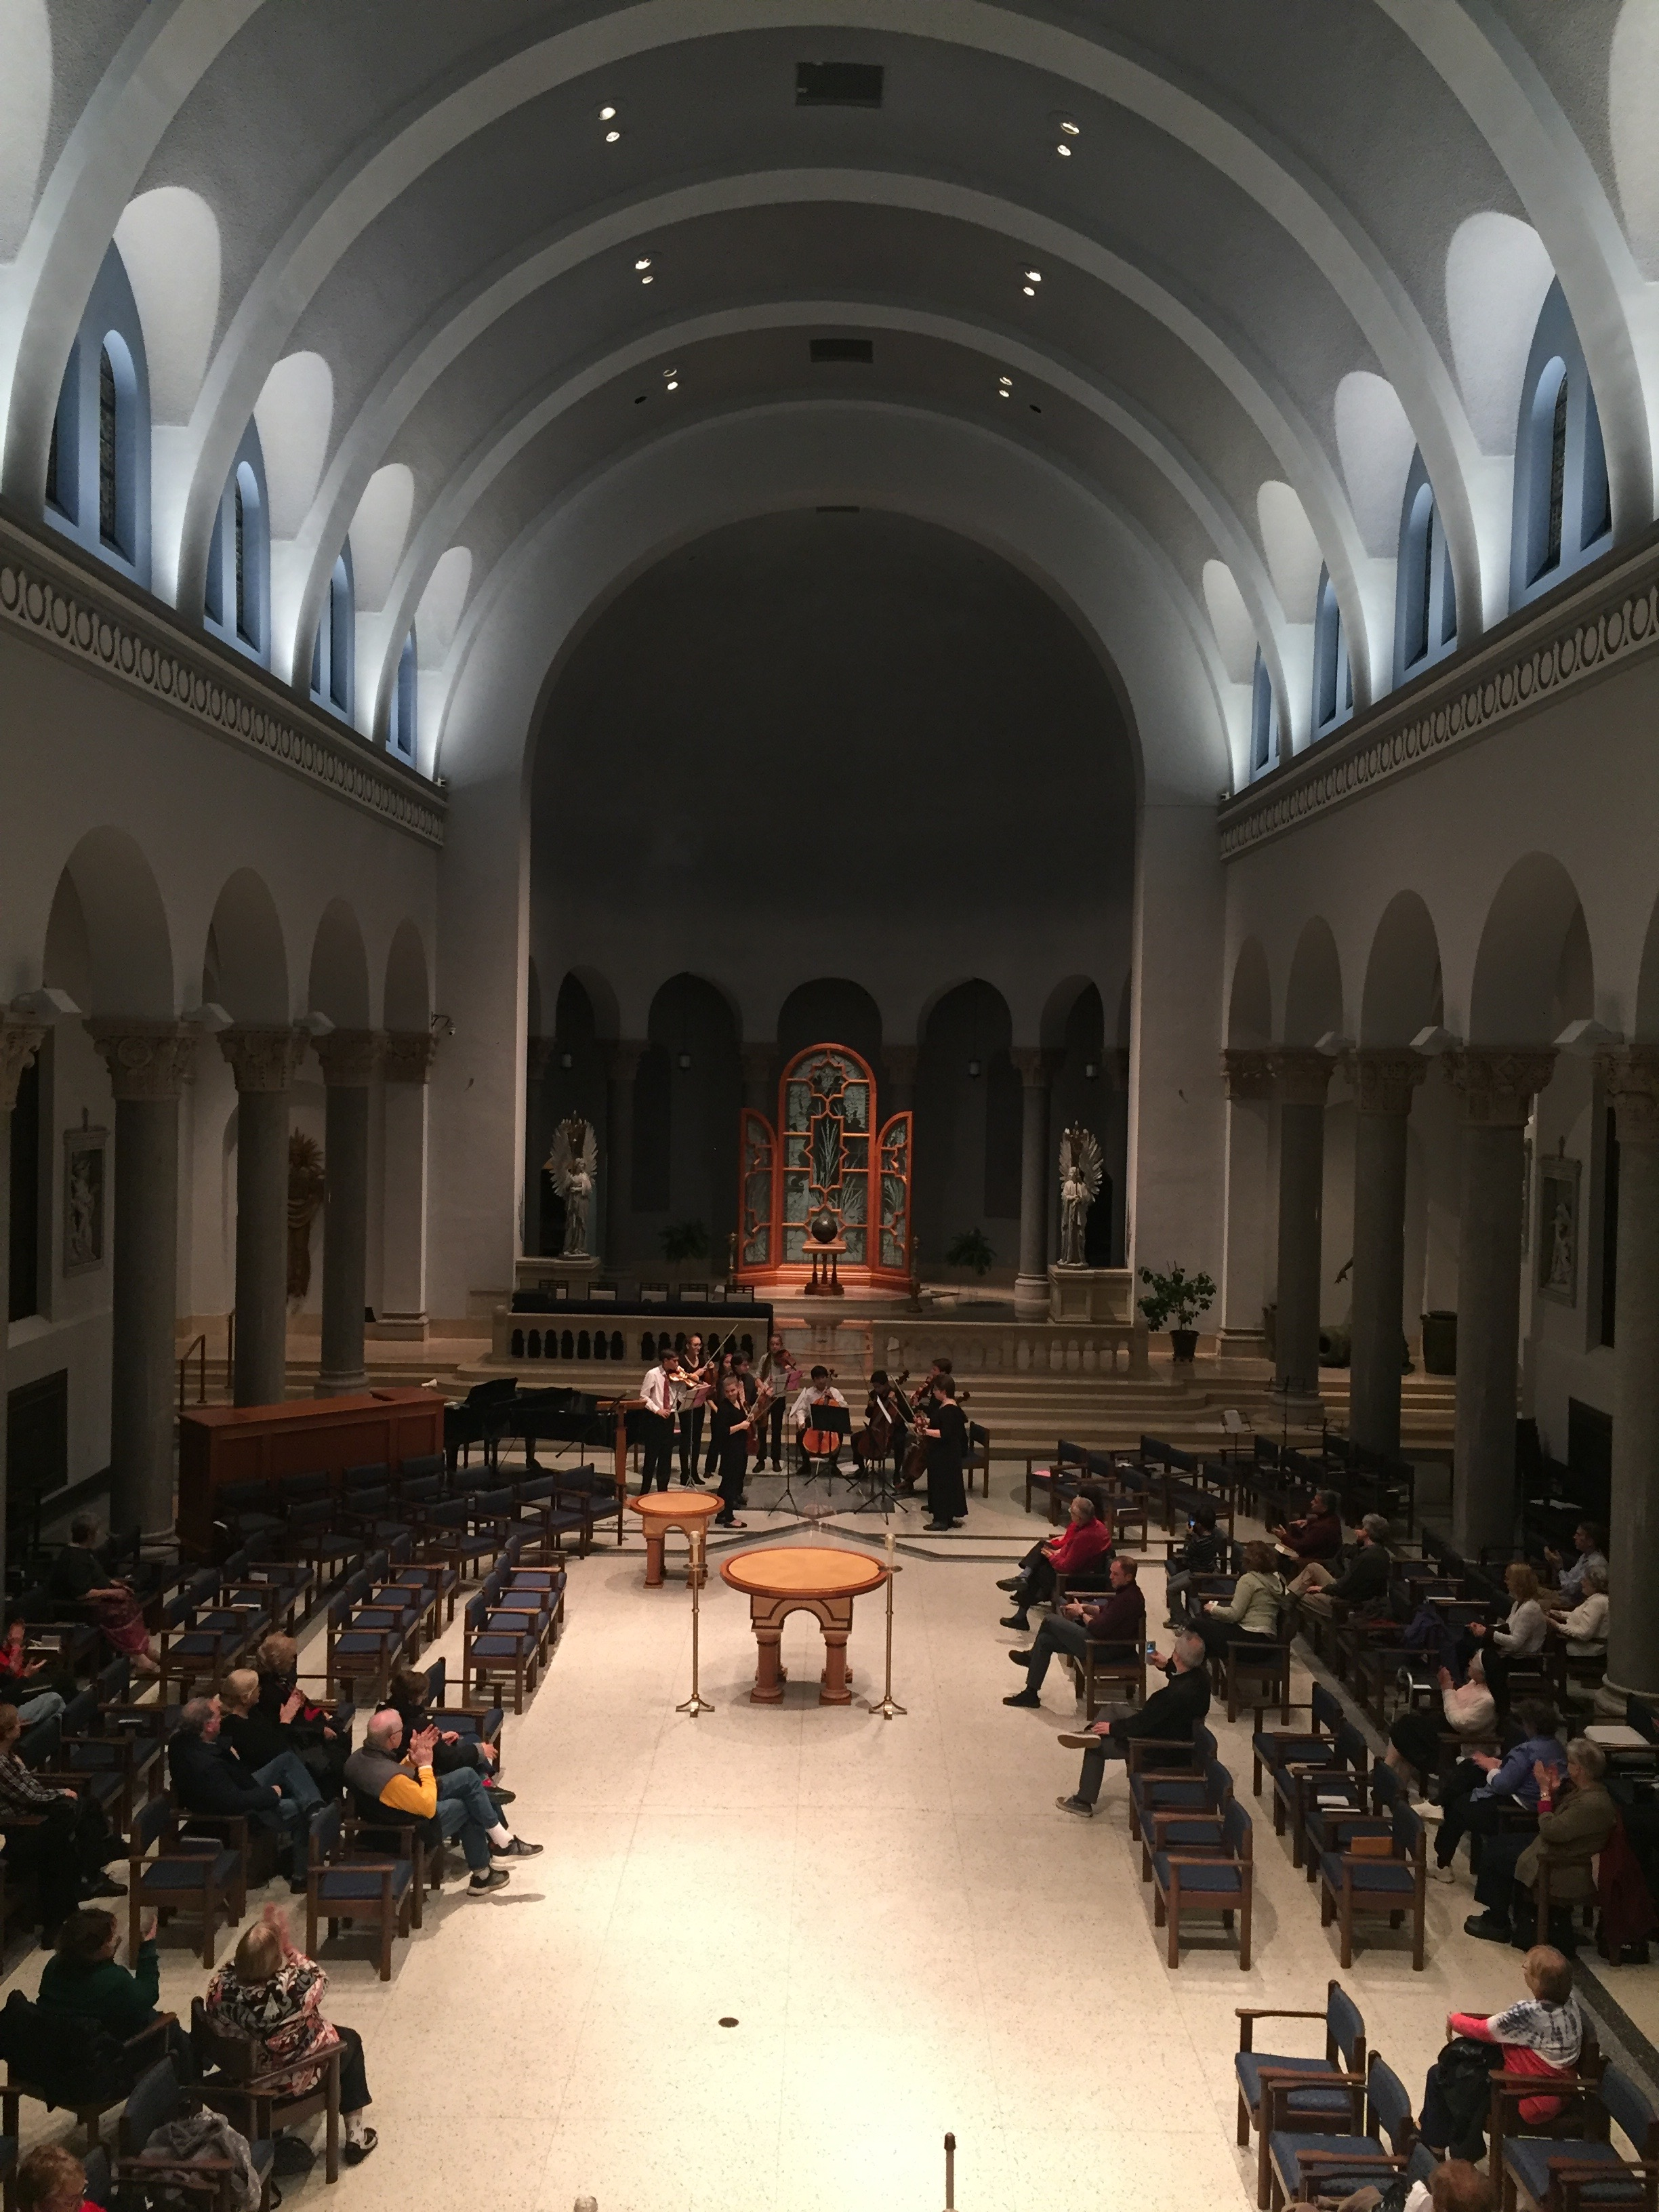 LaRoche College - Festival of Lights - Friday, December 1, 20176:00-7:00pm - Sisters of Divine Providence ChapelFeaturing: TRYPO's Fidelis Trio - Tommy, Maeve, and Nick; TRYPO's Chordis Quartet - Chad, Mei, Felix, and Emma; and PYSO's Artemis Quartet - Chloe, Anna, Nora, and Ji-Yool. Each group performed classical repertoire, then all three groups joined to perform holiday favorites in this stunning setting.